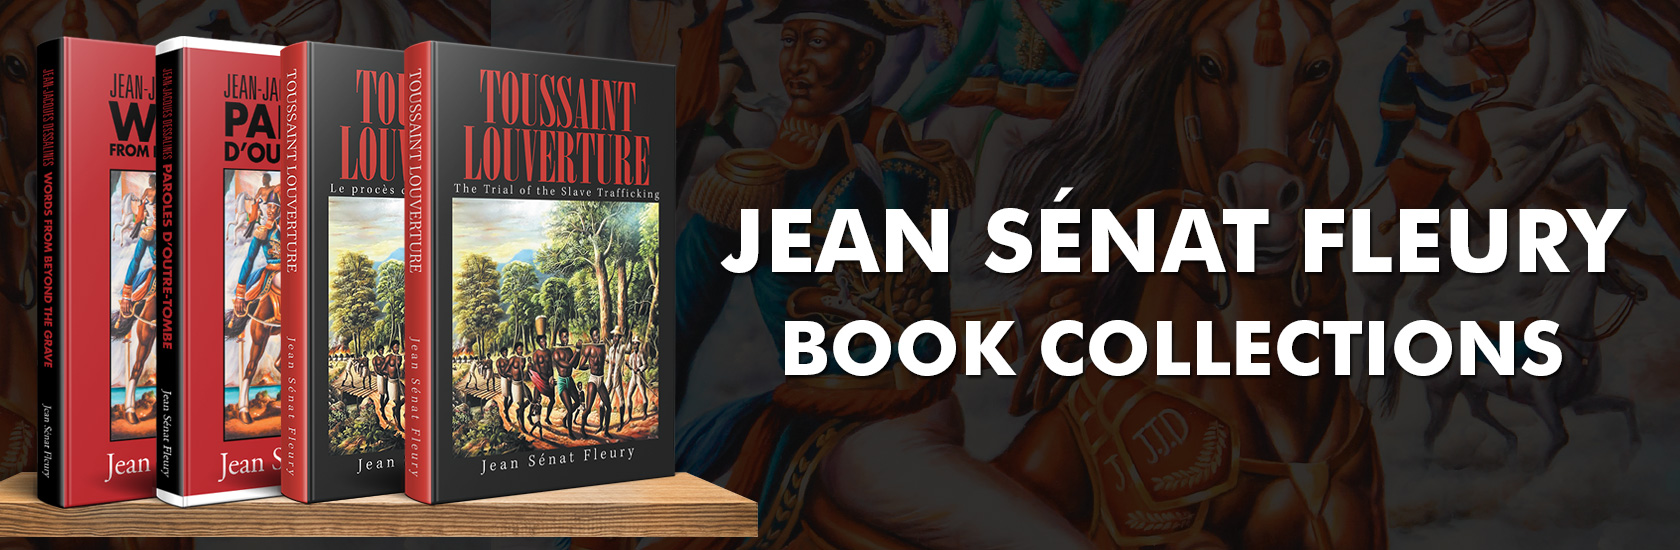 Jean Sénat Fleury Book Collections